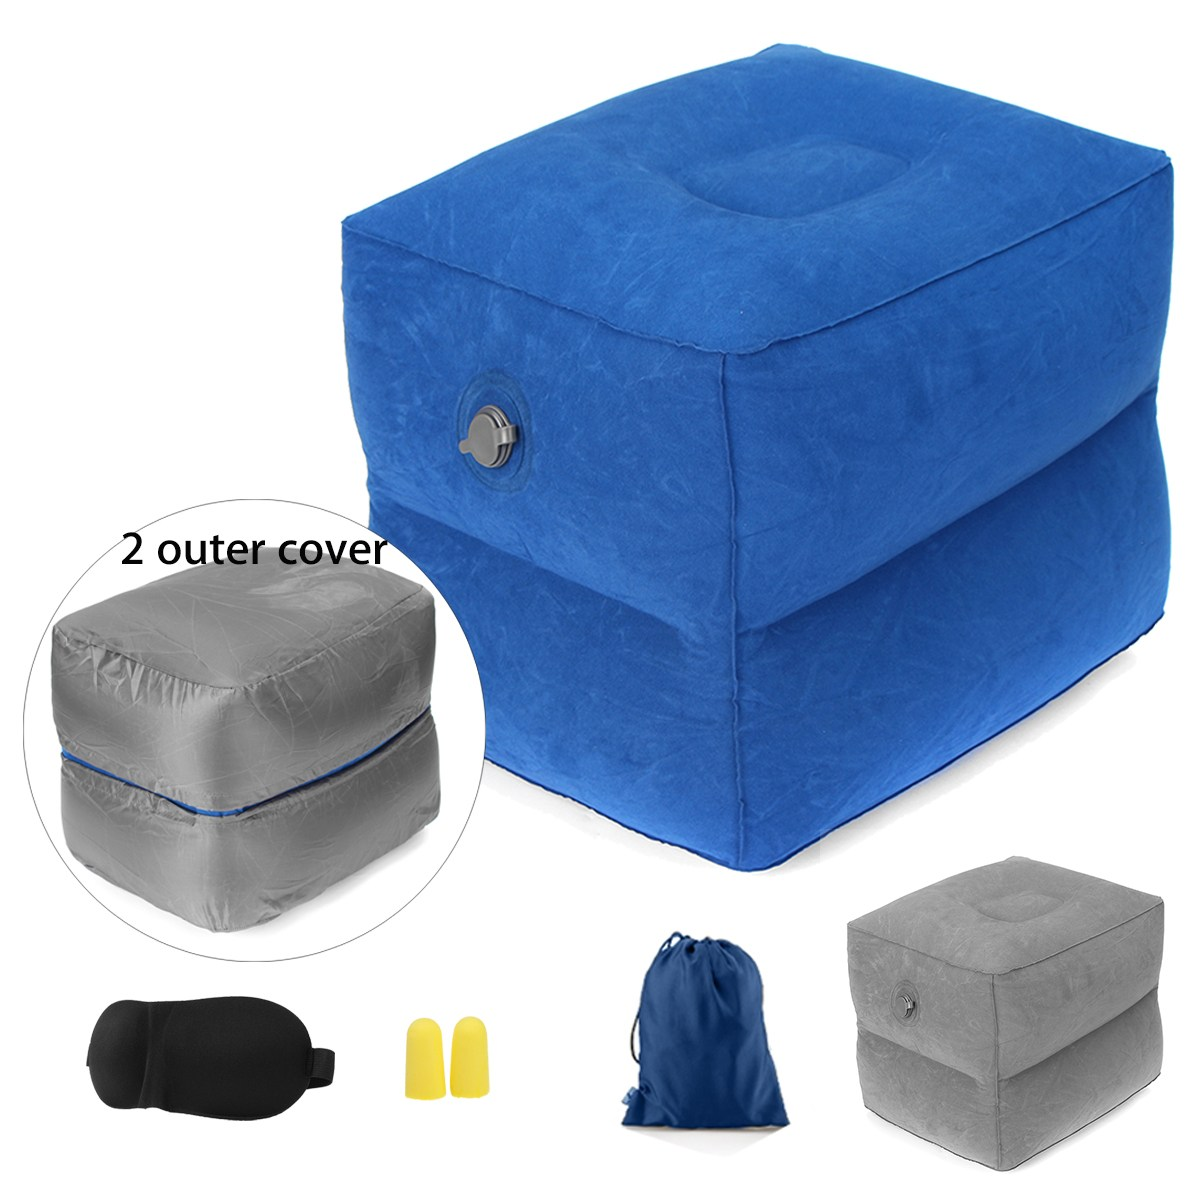 New Portable Children Cars Airplane Inflatable Travel Footrest Parallel Seat Relex Sleep Cushion Pillow Outdoor Rest Tools